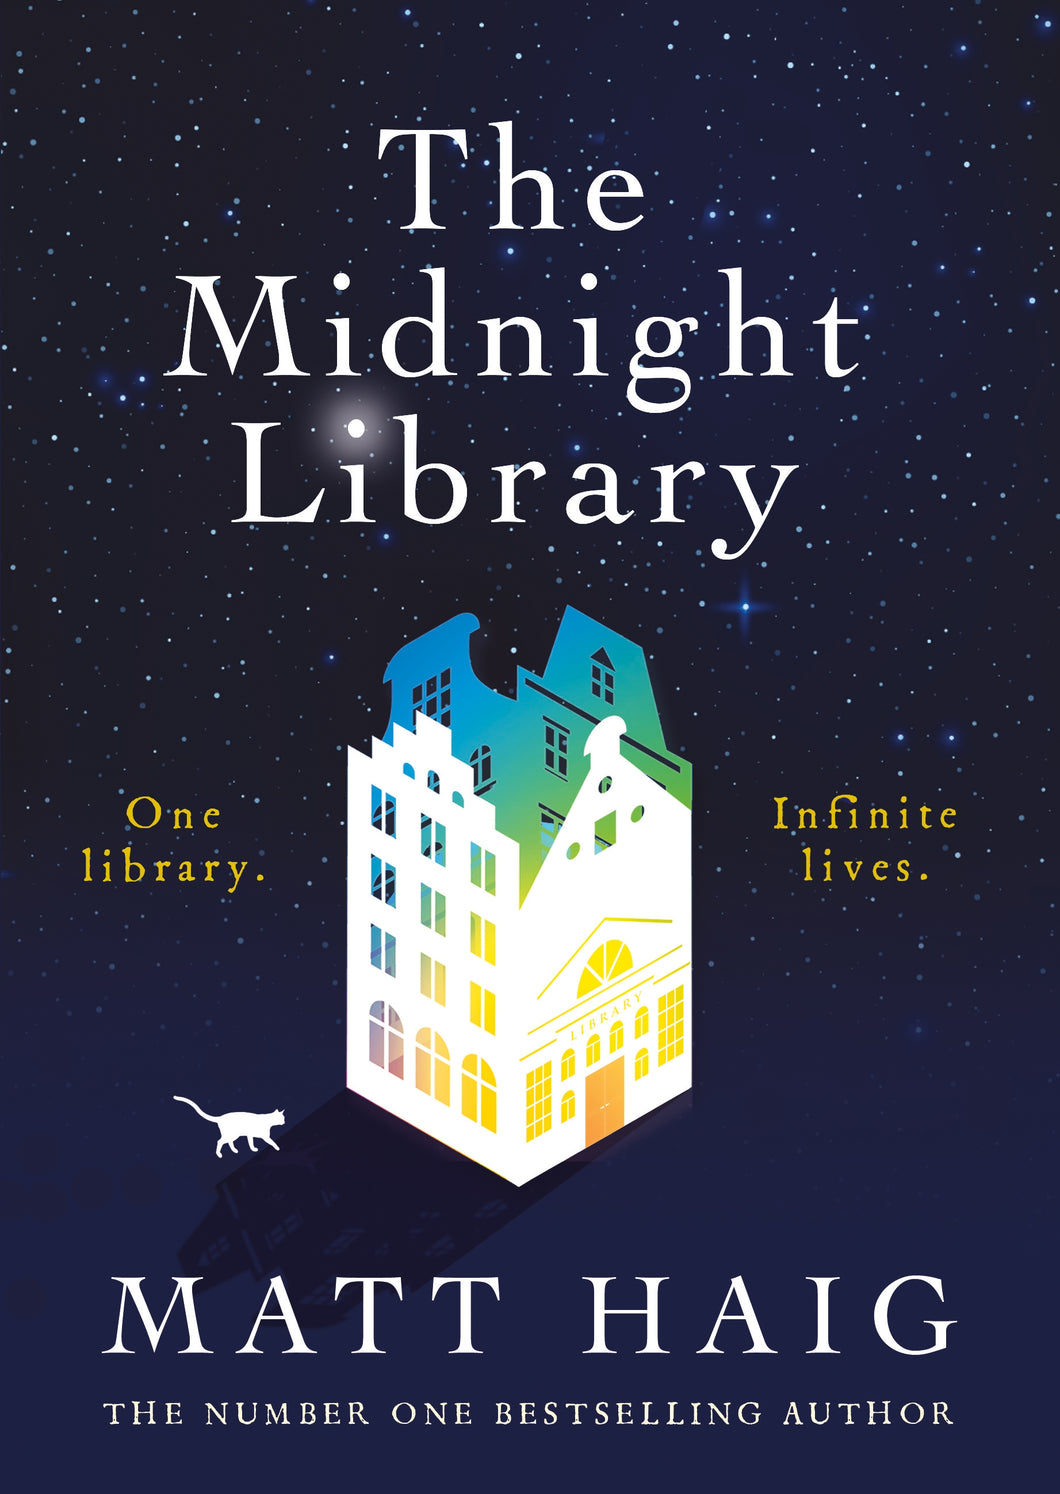 The Midnight Library (Hardback) - Matt Haig